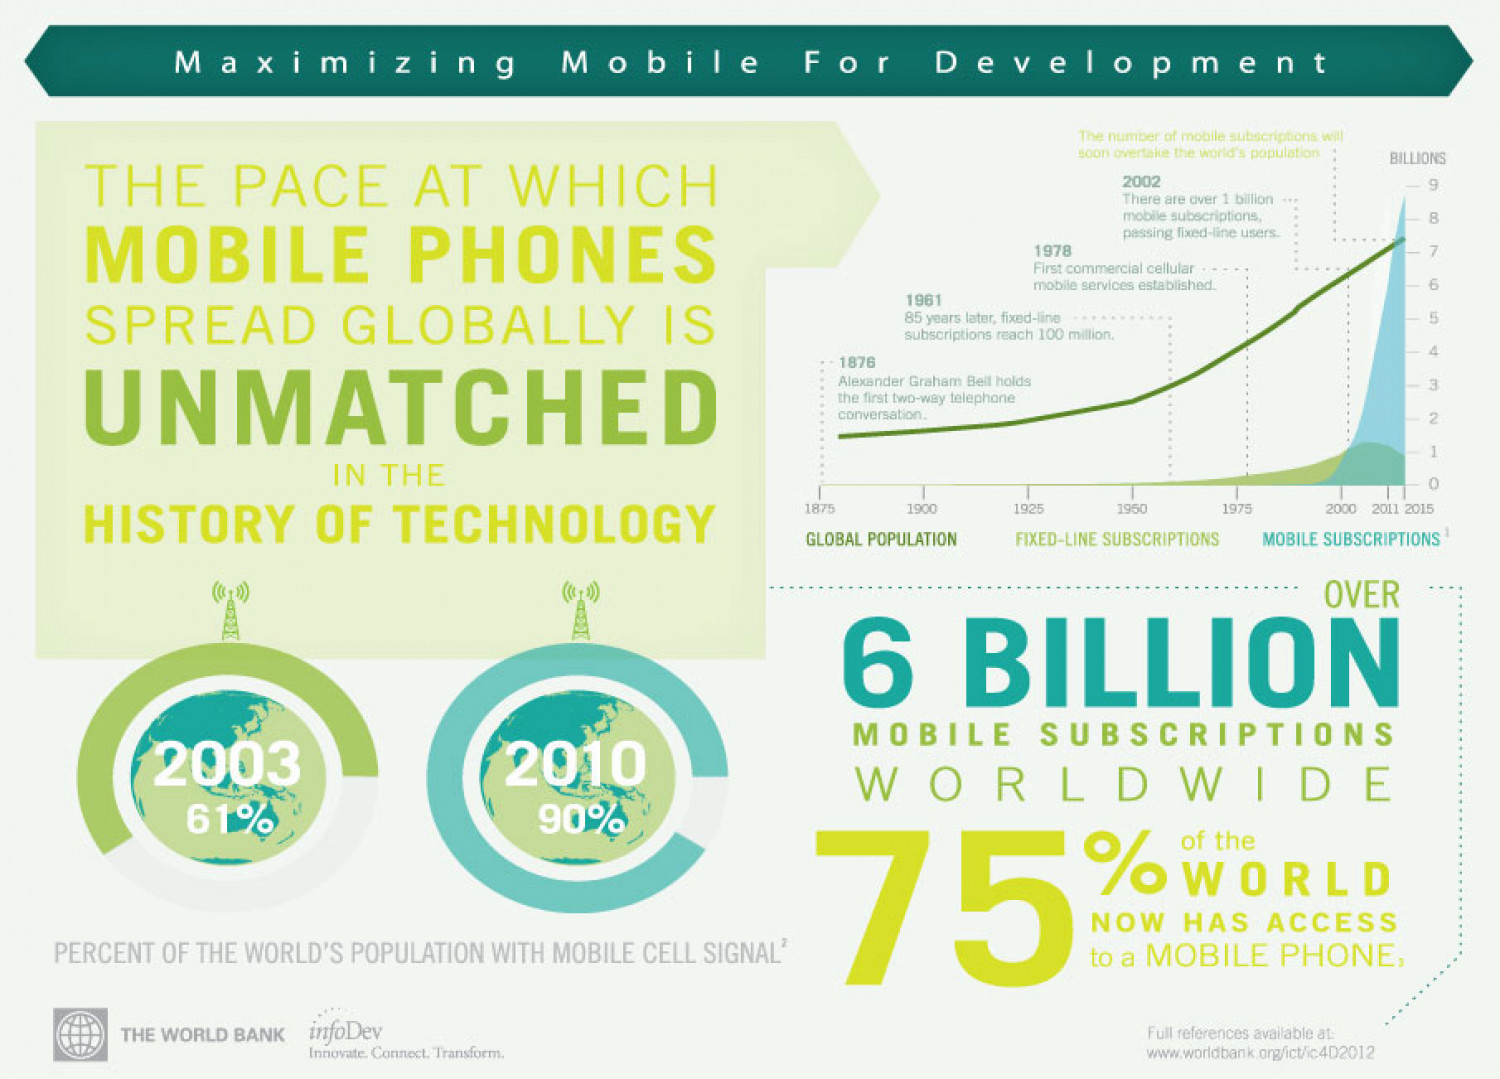 Maximizing Mobile for Development Infographic